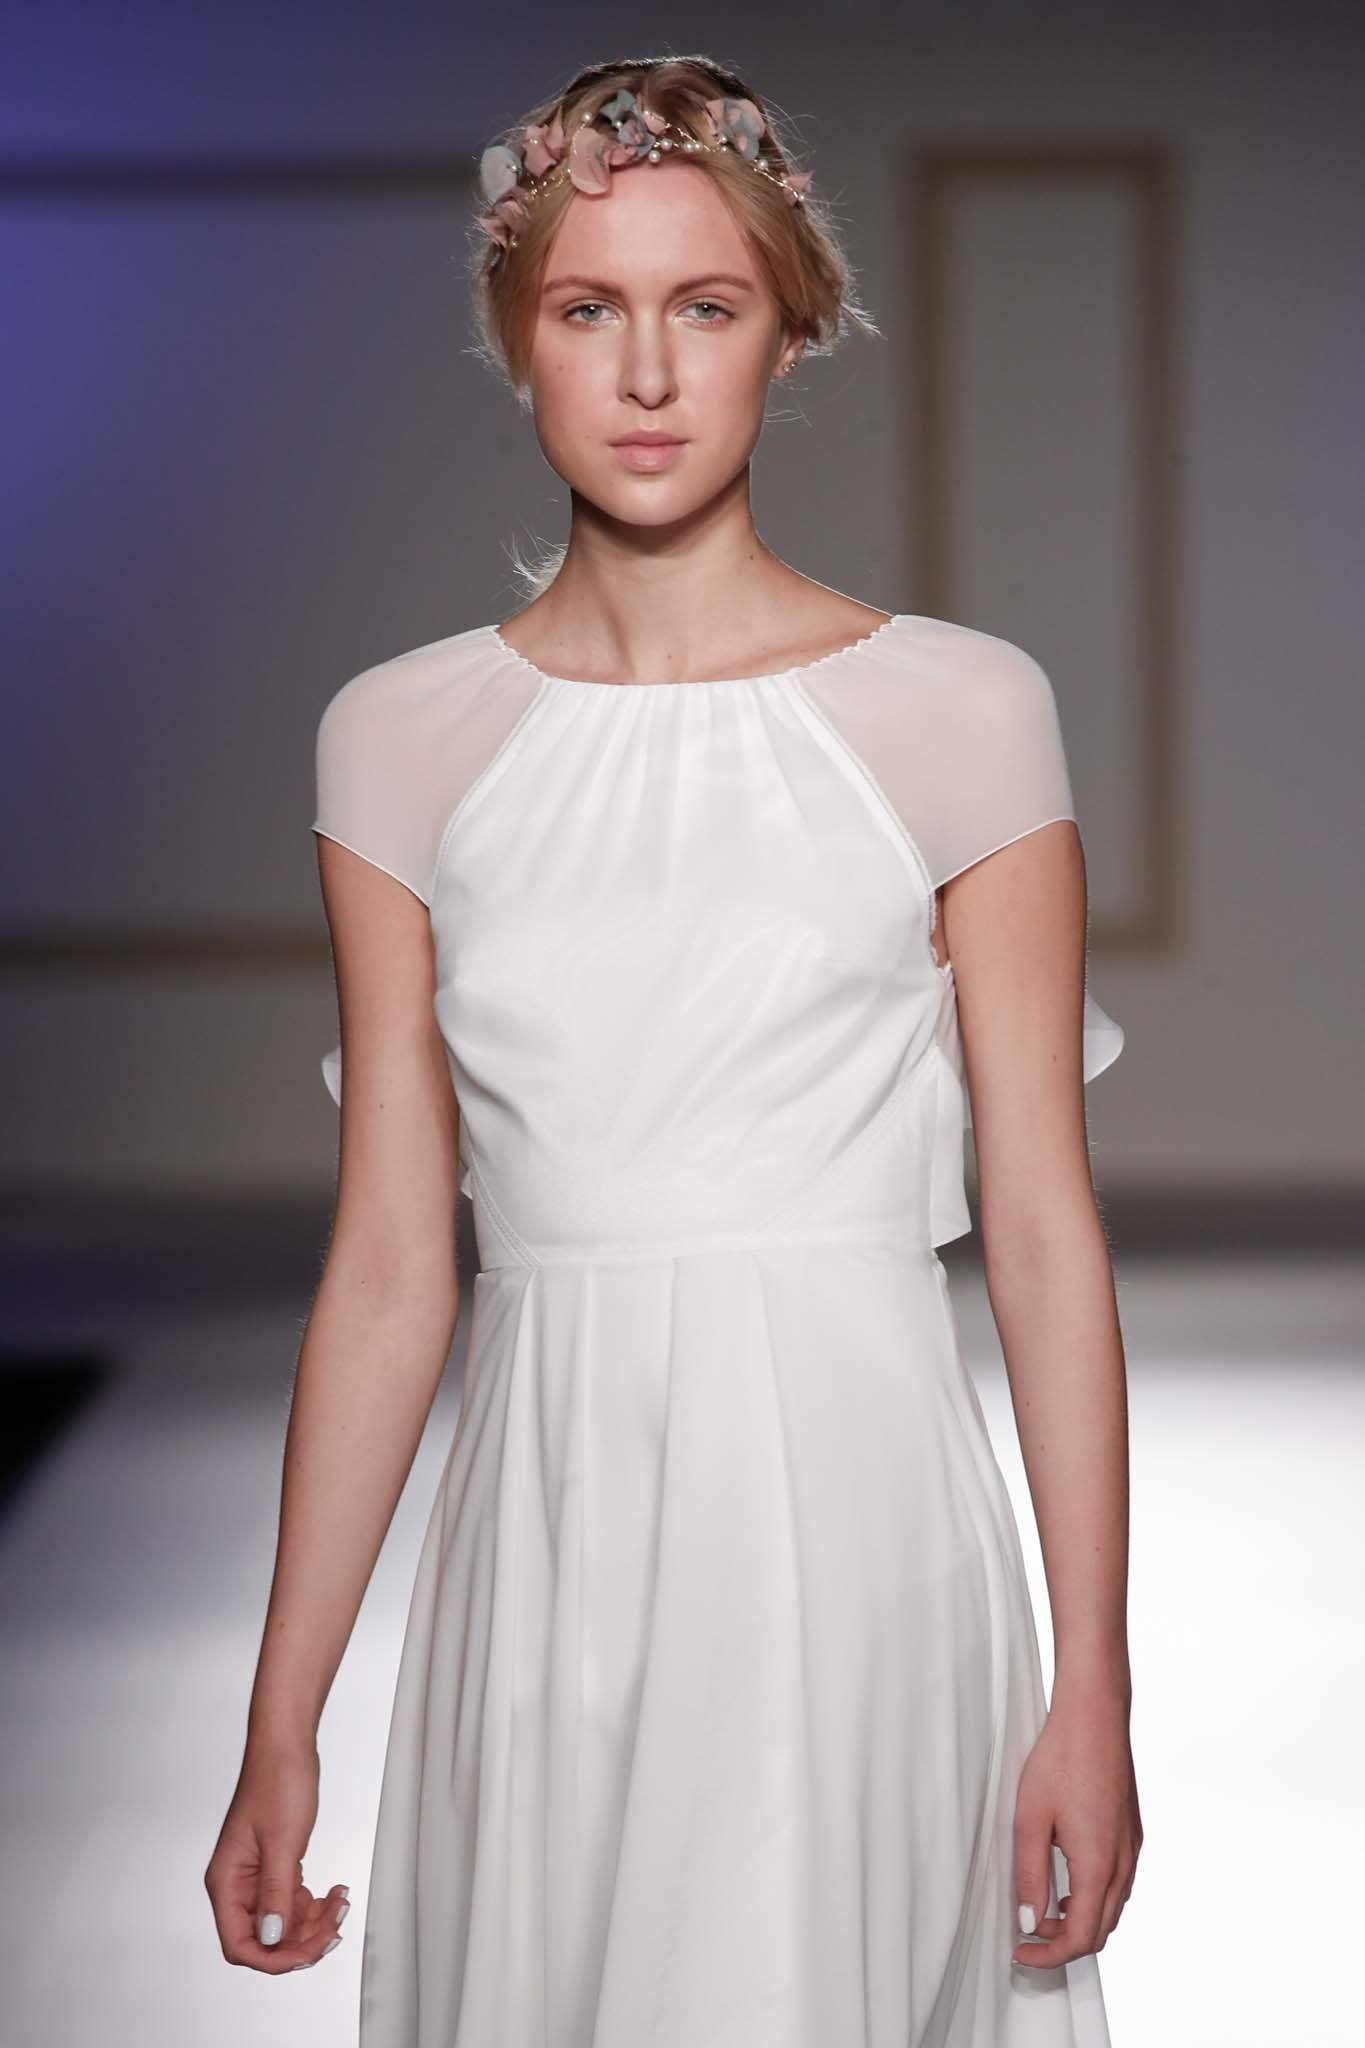 Simple Wedding Hairstyles: Hair Ideas for the Chic, Unfussy Bride